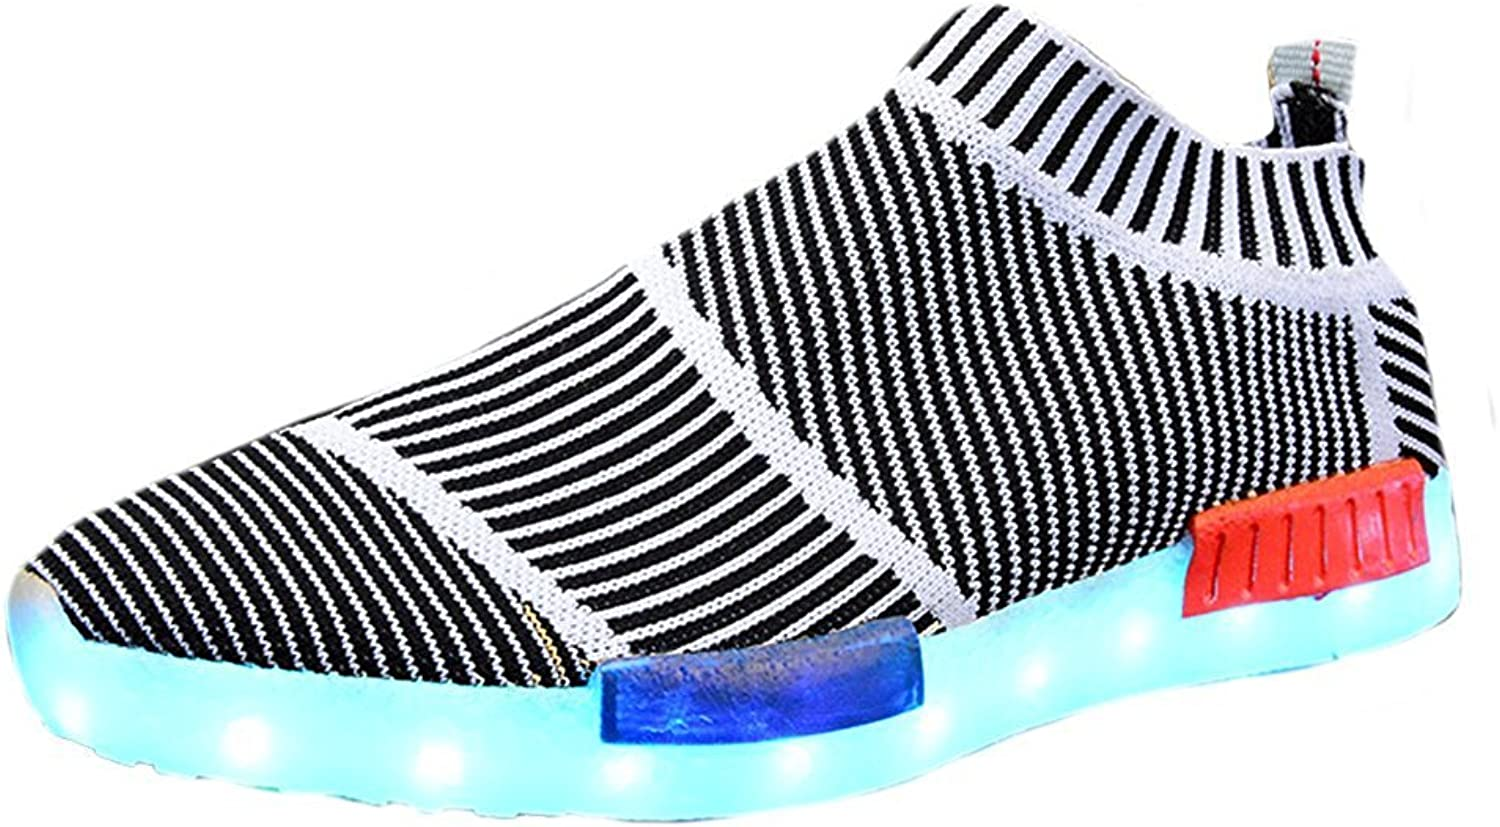 Xiaoyang Men's Women's LED Knit Sneakers Fashion USB Charging Light shoes 7 colors for Halloween